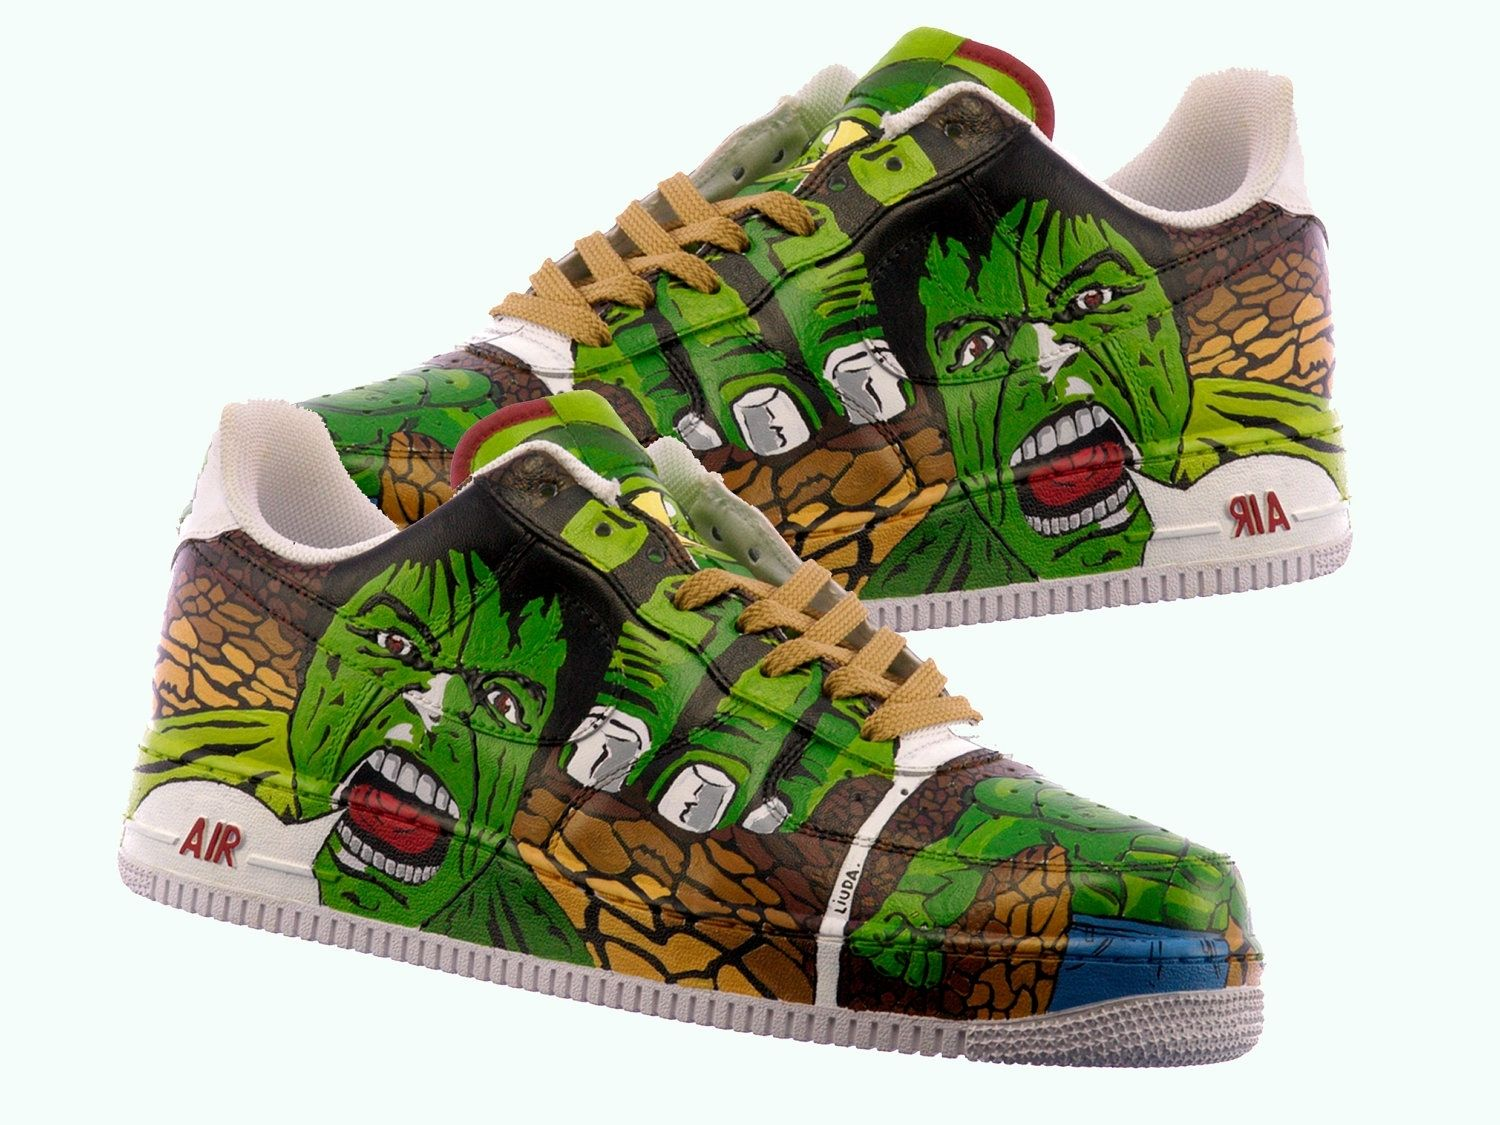 Hand Crafted Hulk Hand Painted Shoes/ Comic Shoes/Incredible Hulk ...